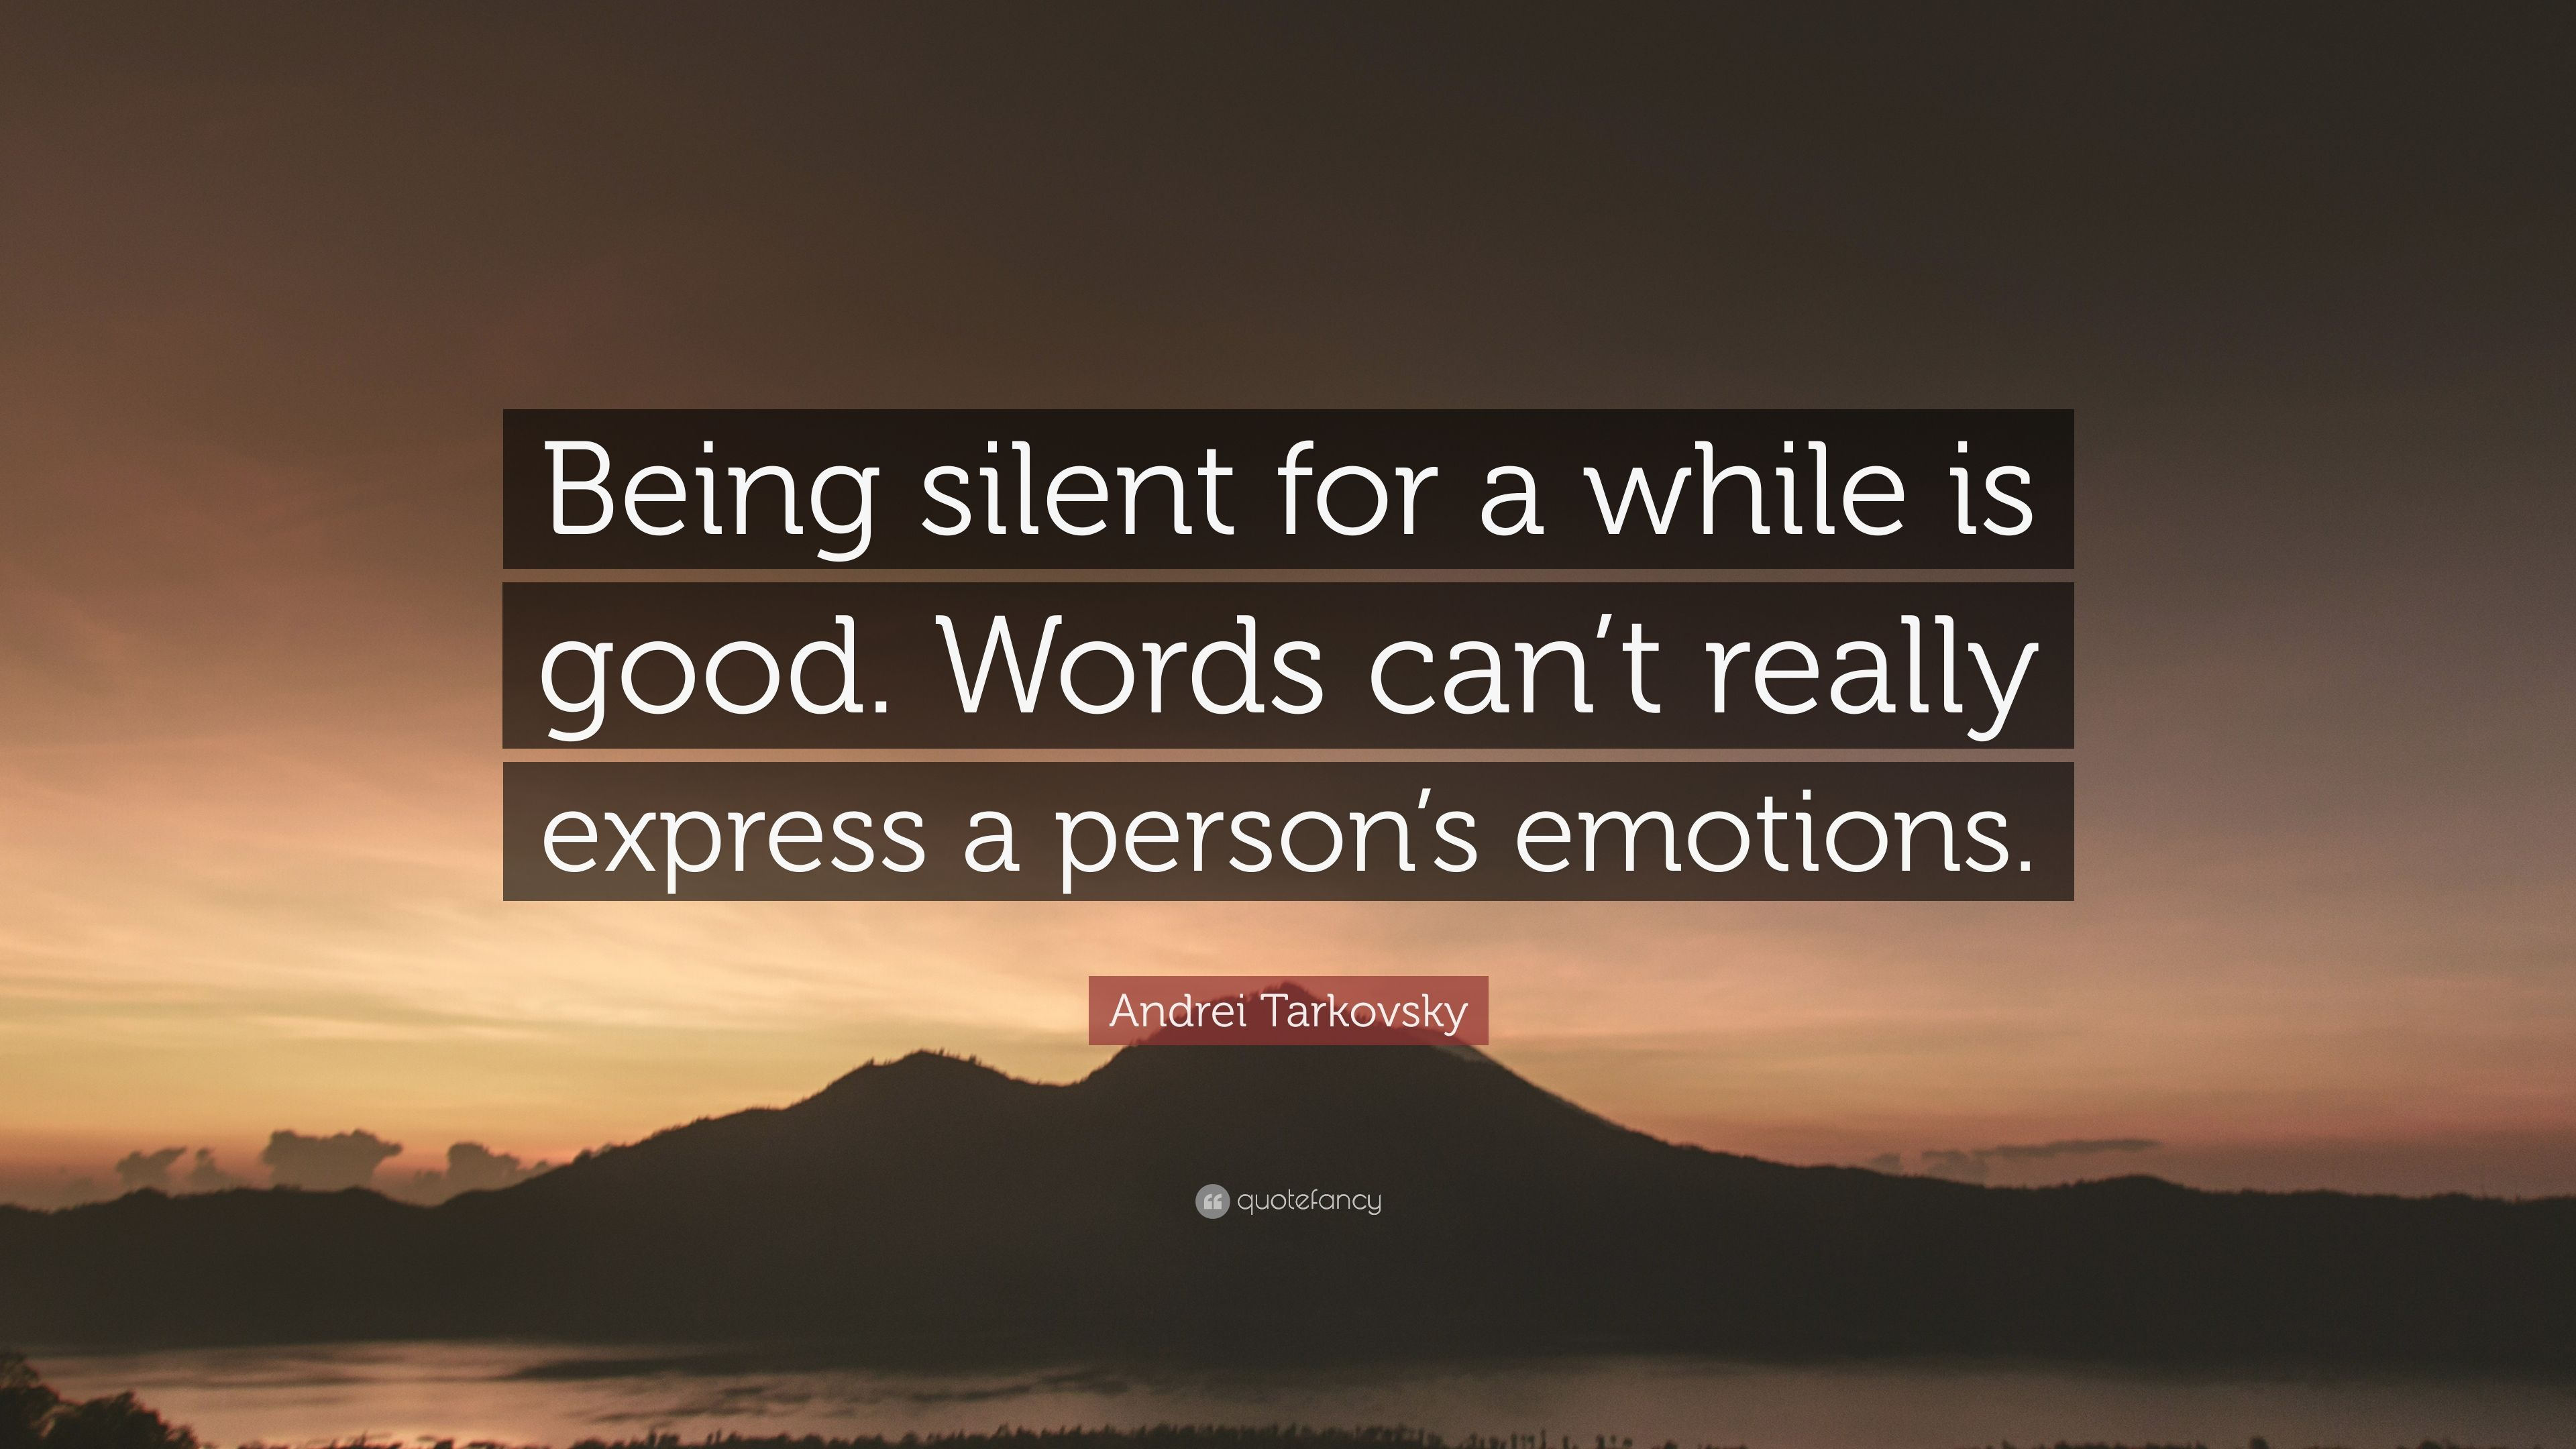 Andrei Tarkovsky Quote Being Silent For A While Is Good Words Can T Really Express A Person S Emotions 12 Wallpapers Quotefancy